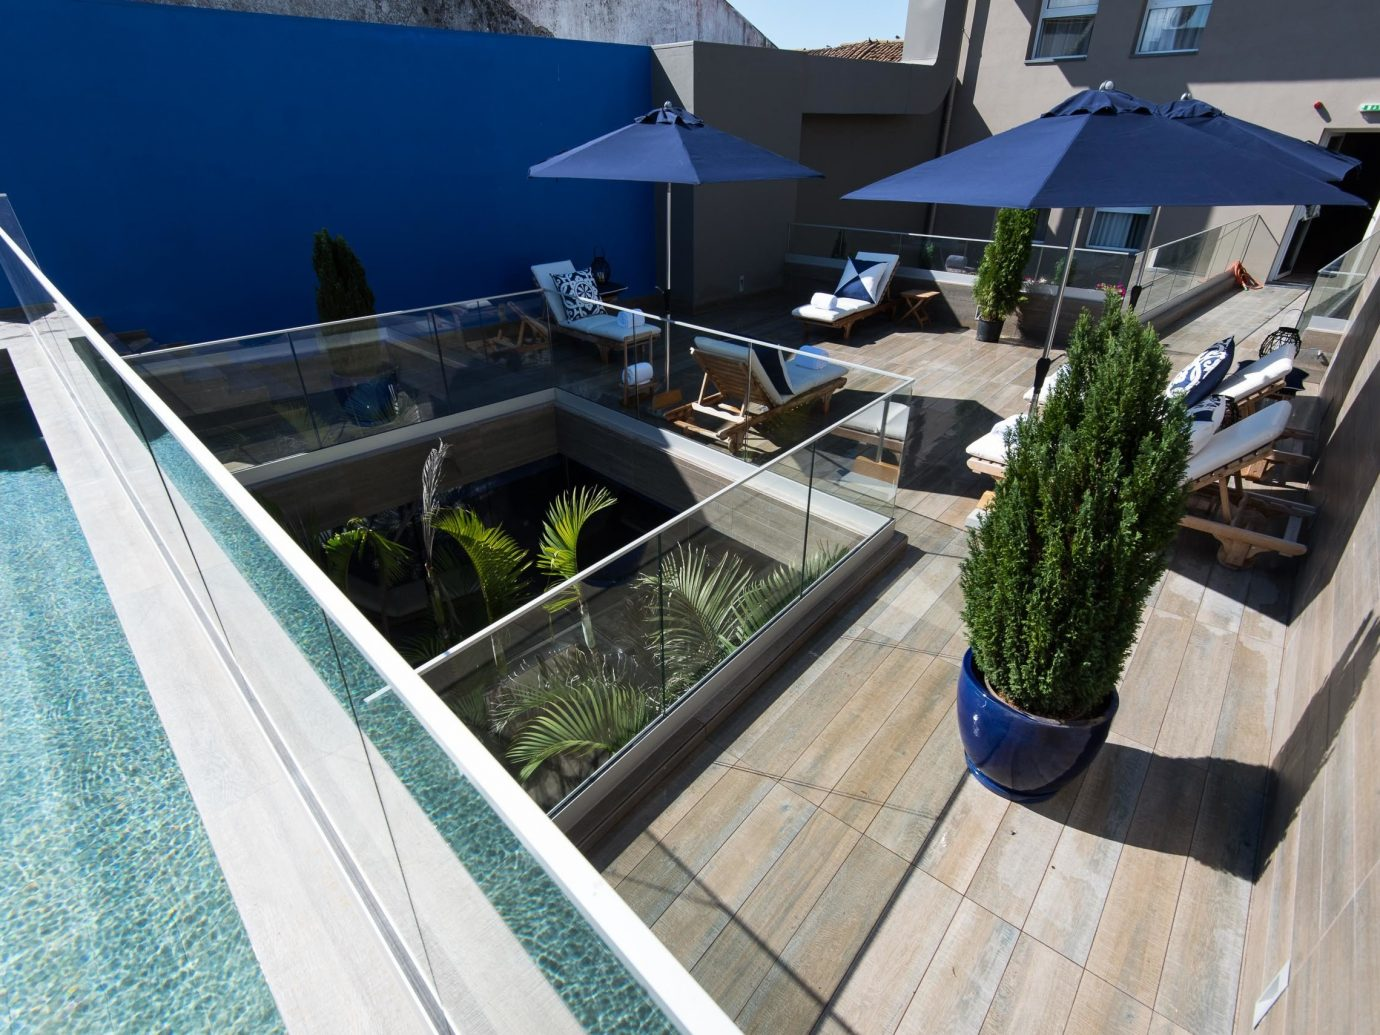 Portugal Trip Ideas property Architecture roof condominium house real estate building swimming pool apartment daylighting